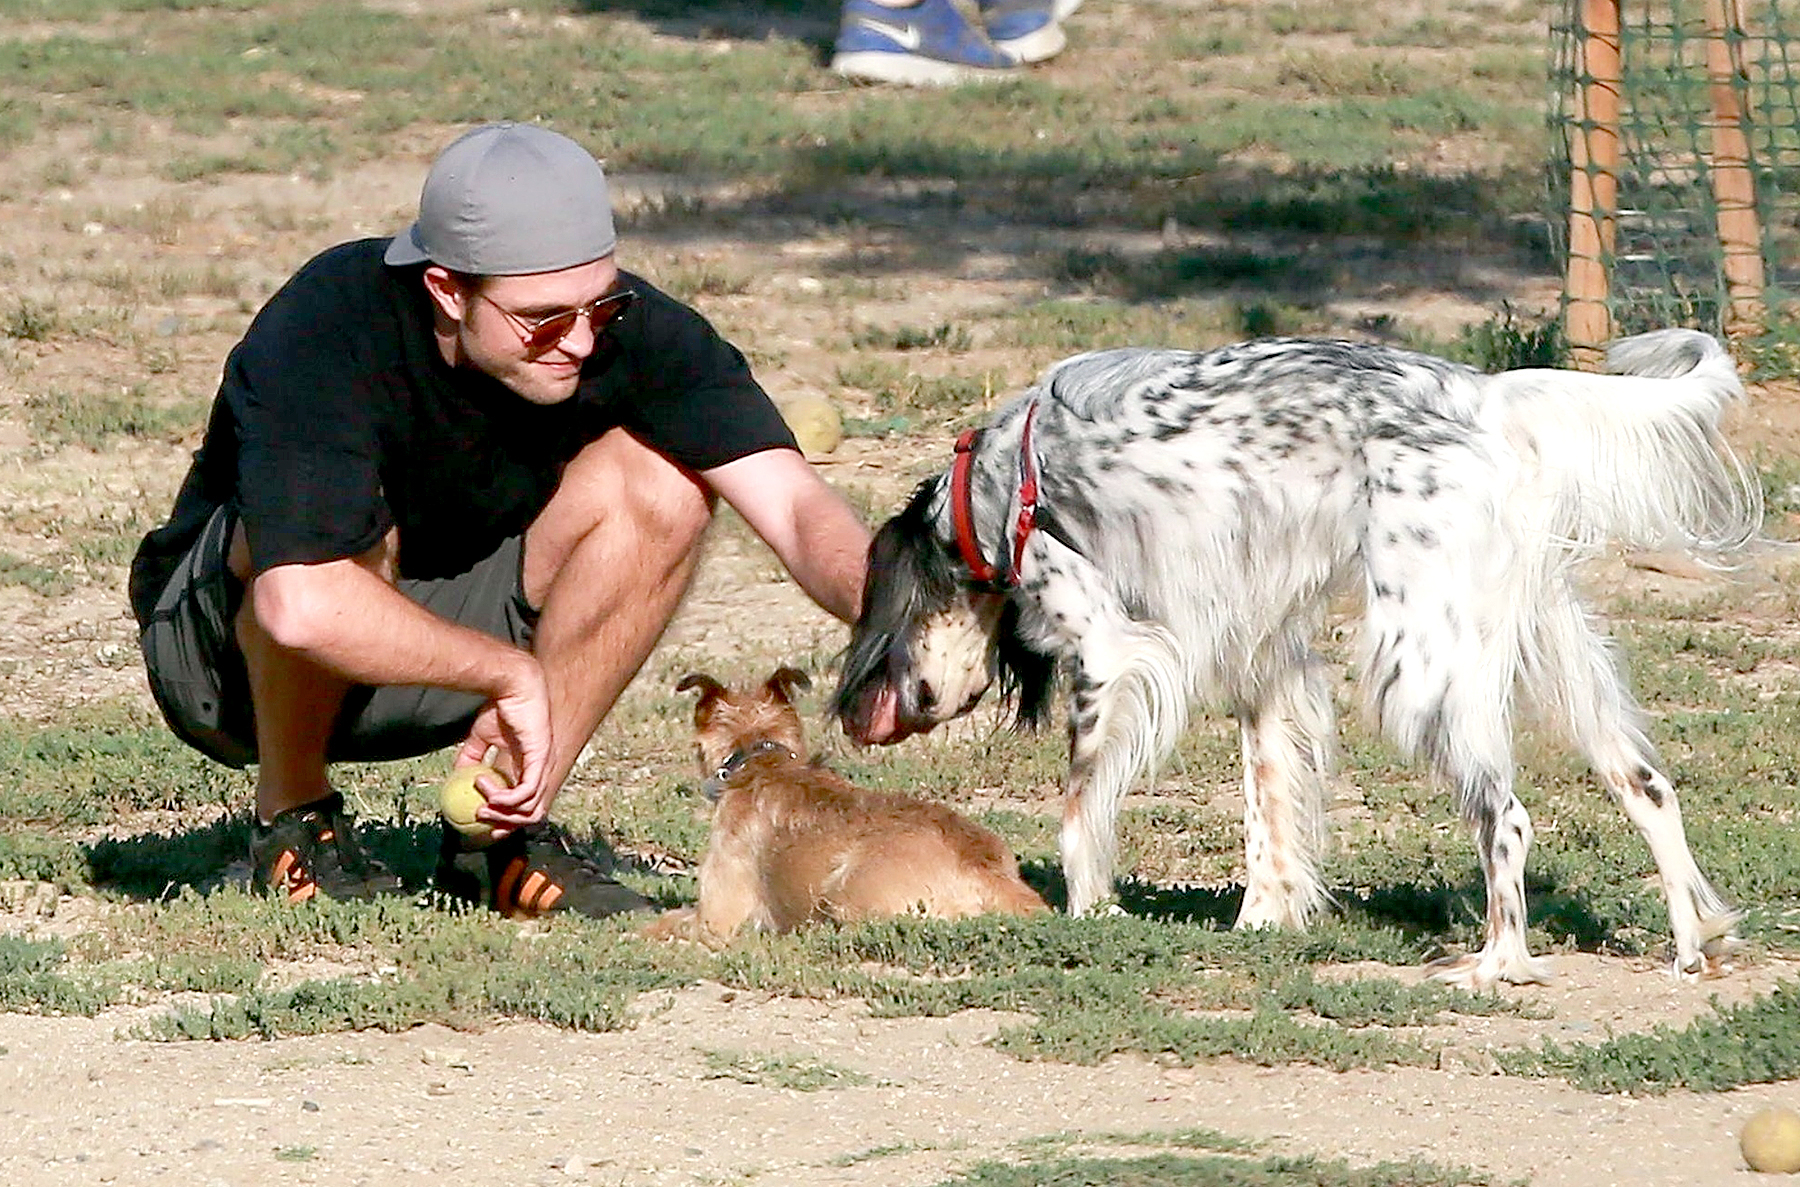 Robert Pattinson is spotted with his fiancee, FKA Twigs' dog, on a fun afternoon at the dog park on July 8, 2017.